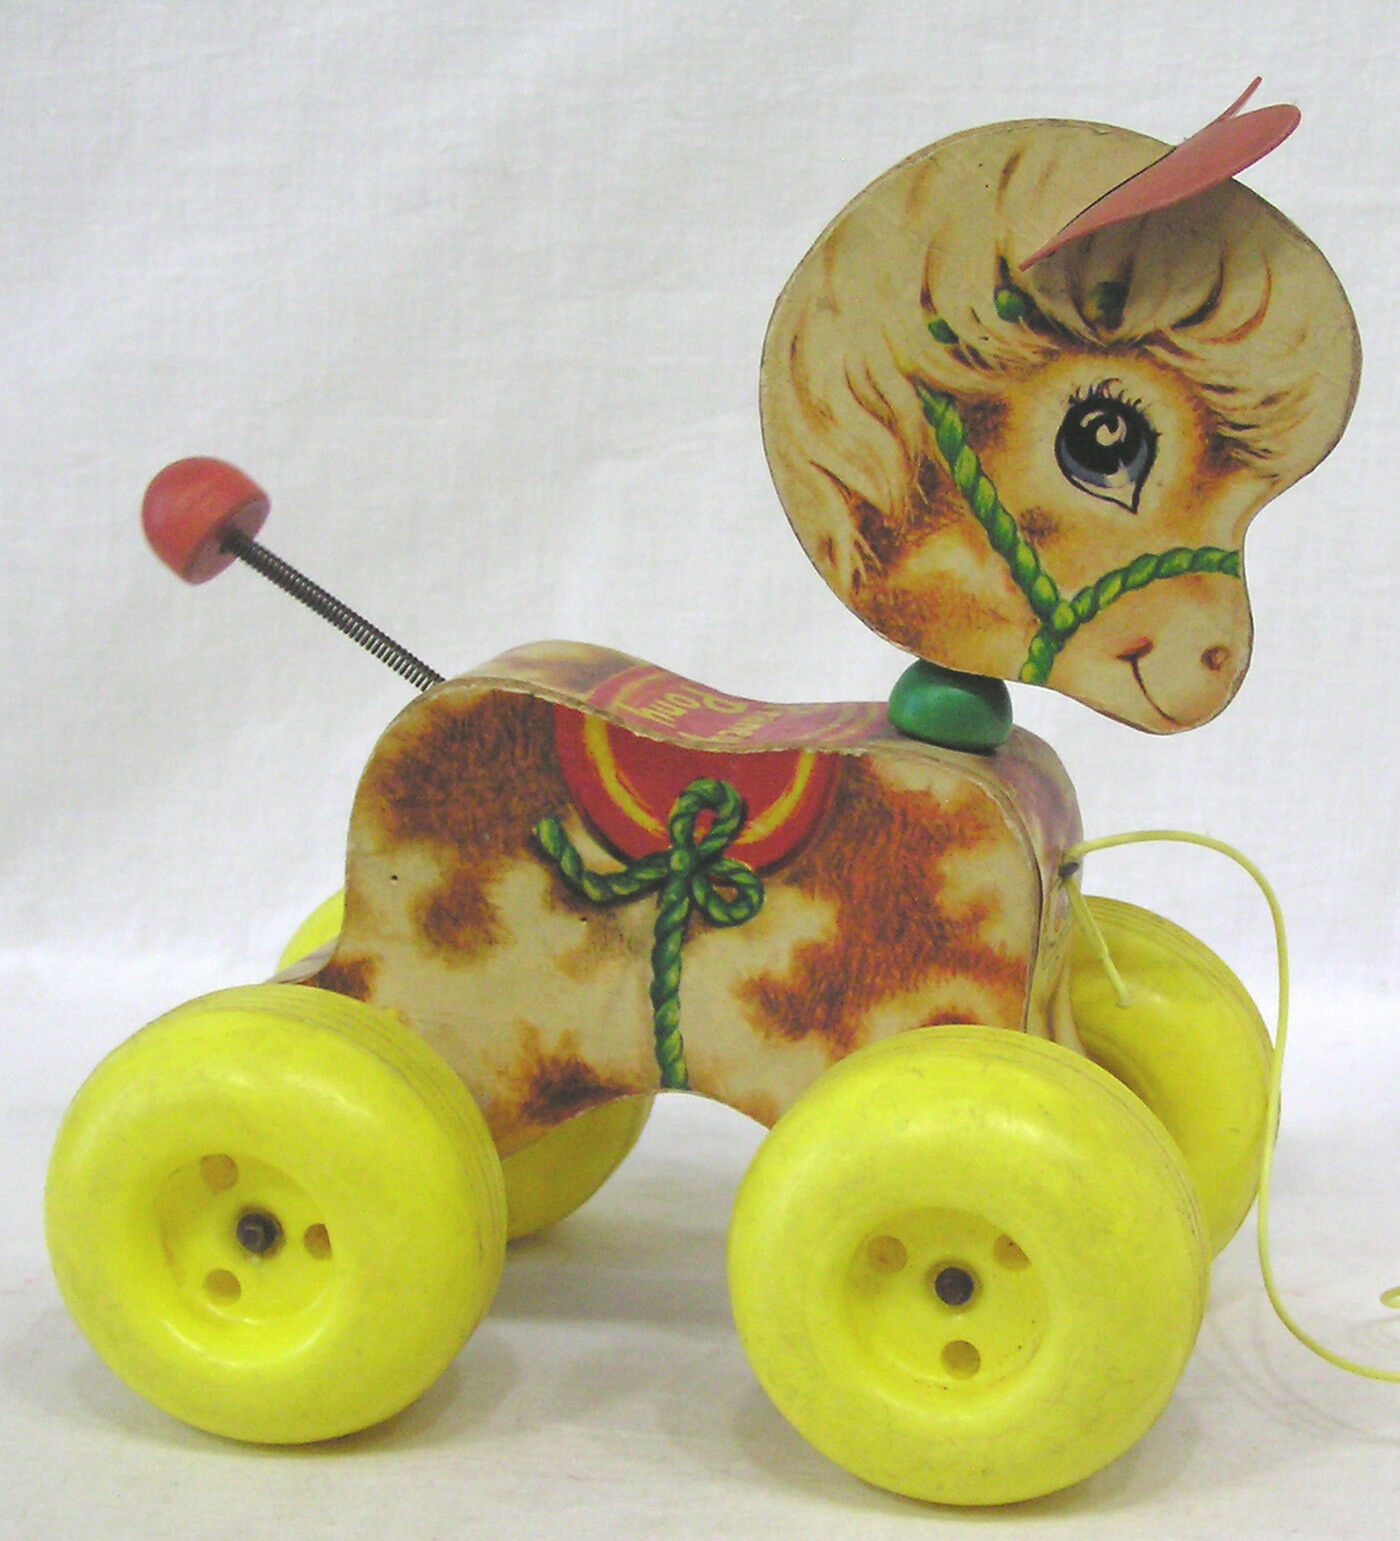 Vintage Fisher Price Pull Toy Prancy Pony 1965 Wood w Plastic Wheels